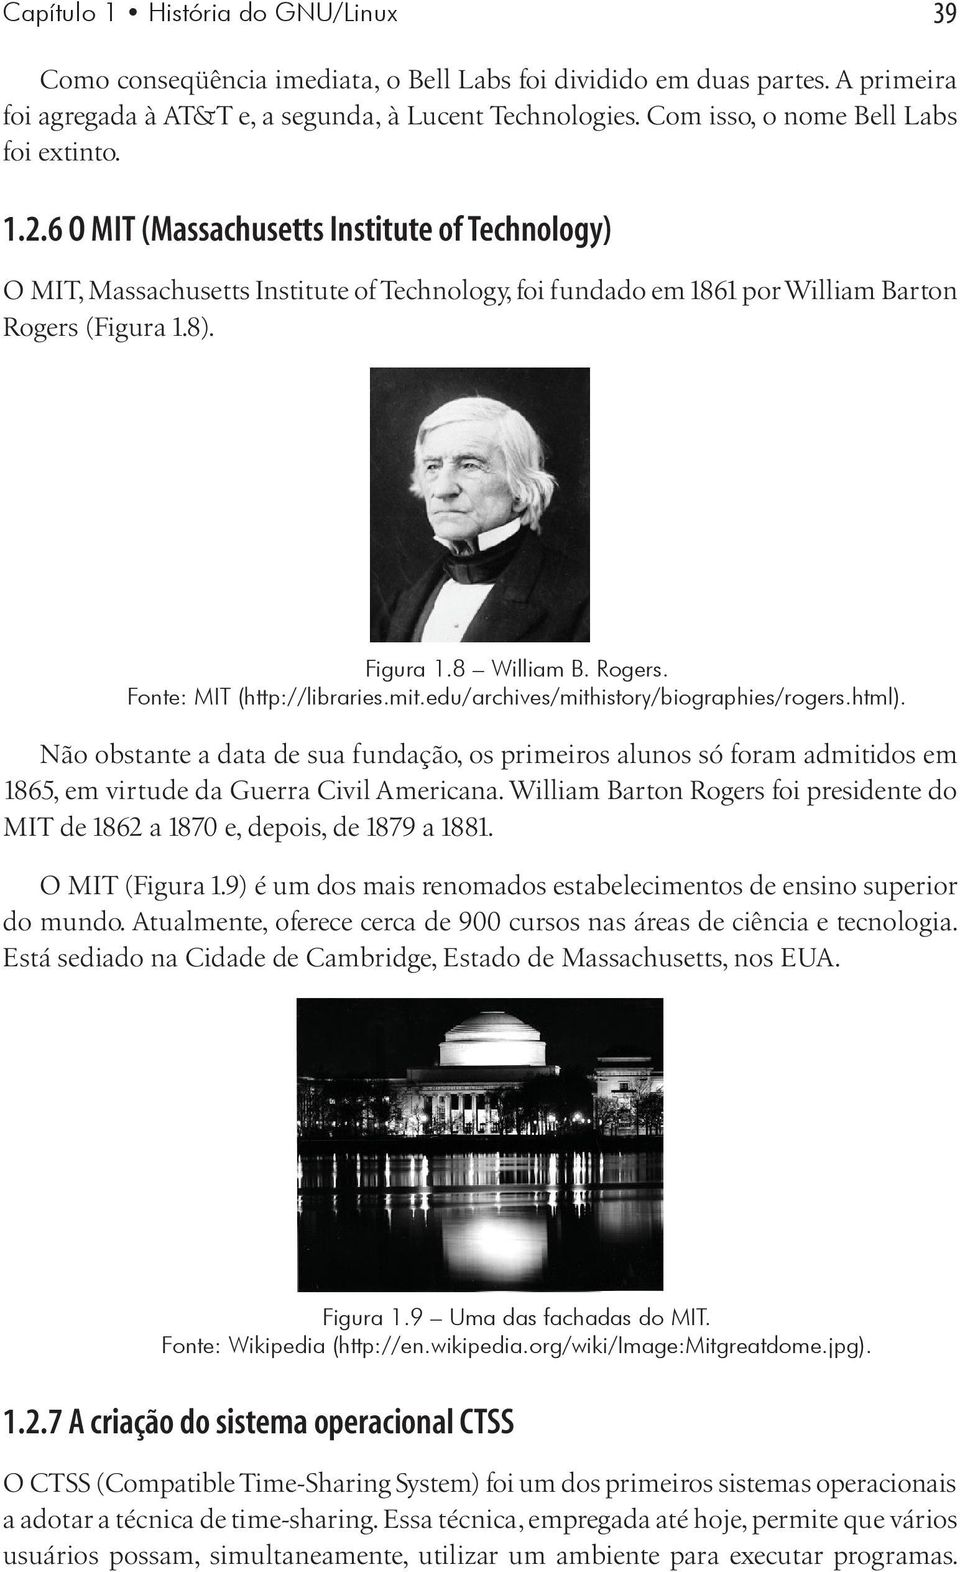 Figura 1.8 William B. Rogers. Fonte: MIT (http://libraries.mit.edu/archives/mithistory/biographies/rogers.html).